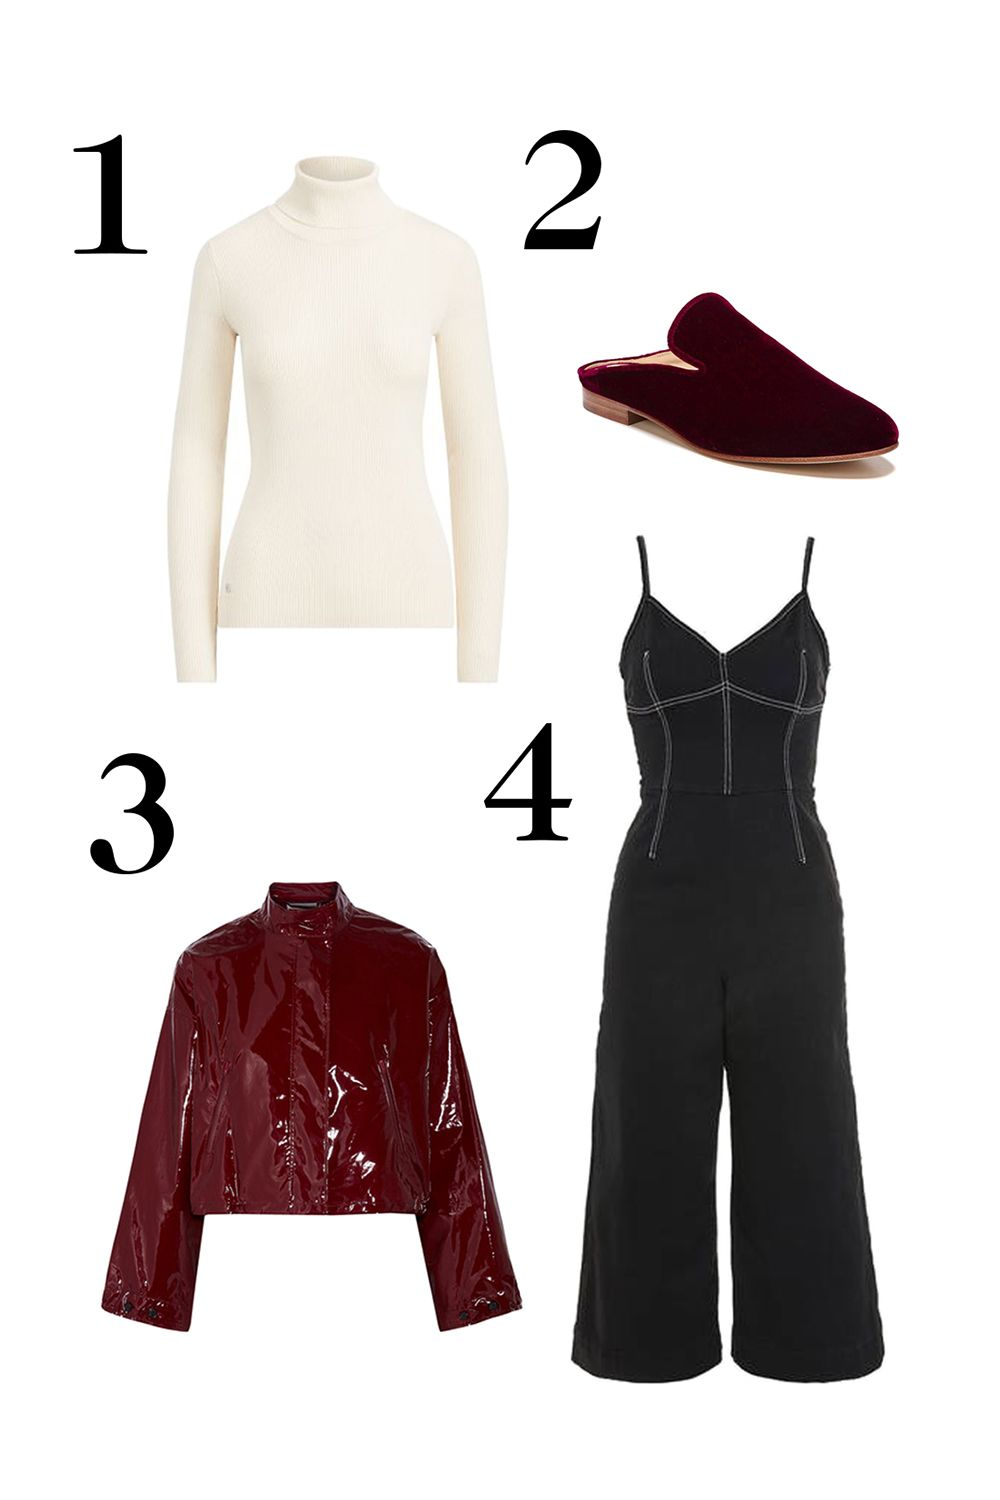 23f0088947 7 Stylish Winter Work Outfit Ideas - What to Wear to the Office This Winter